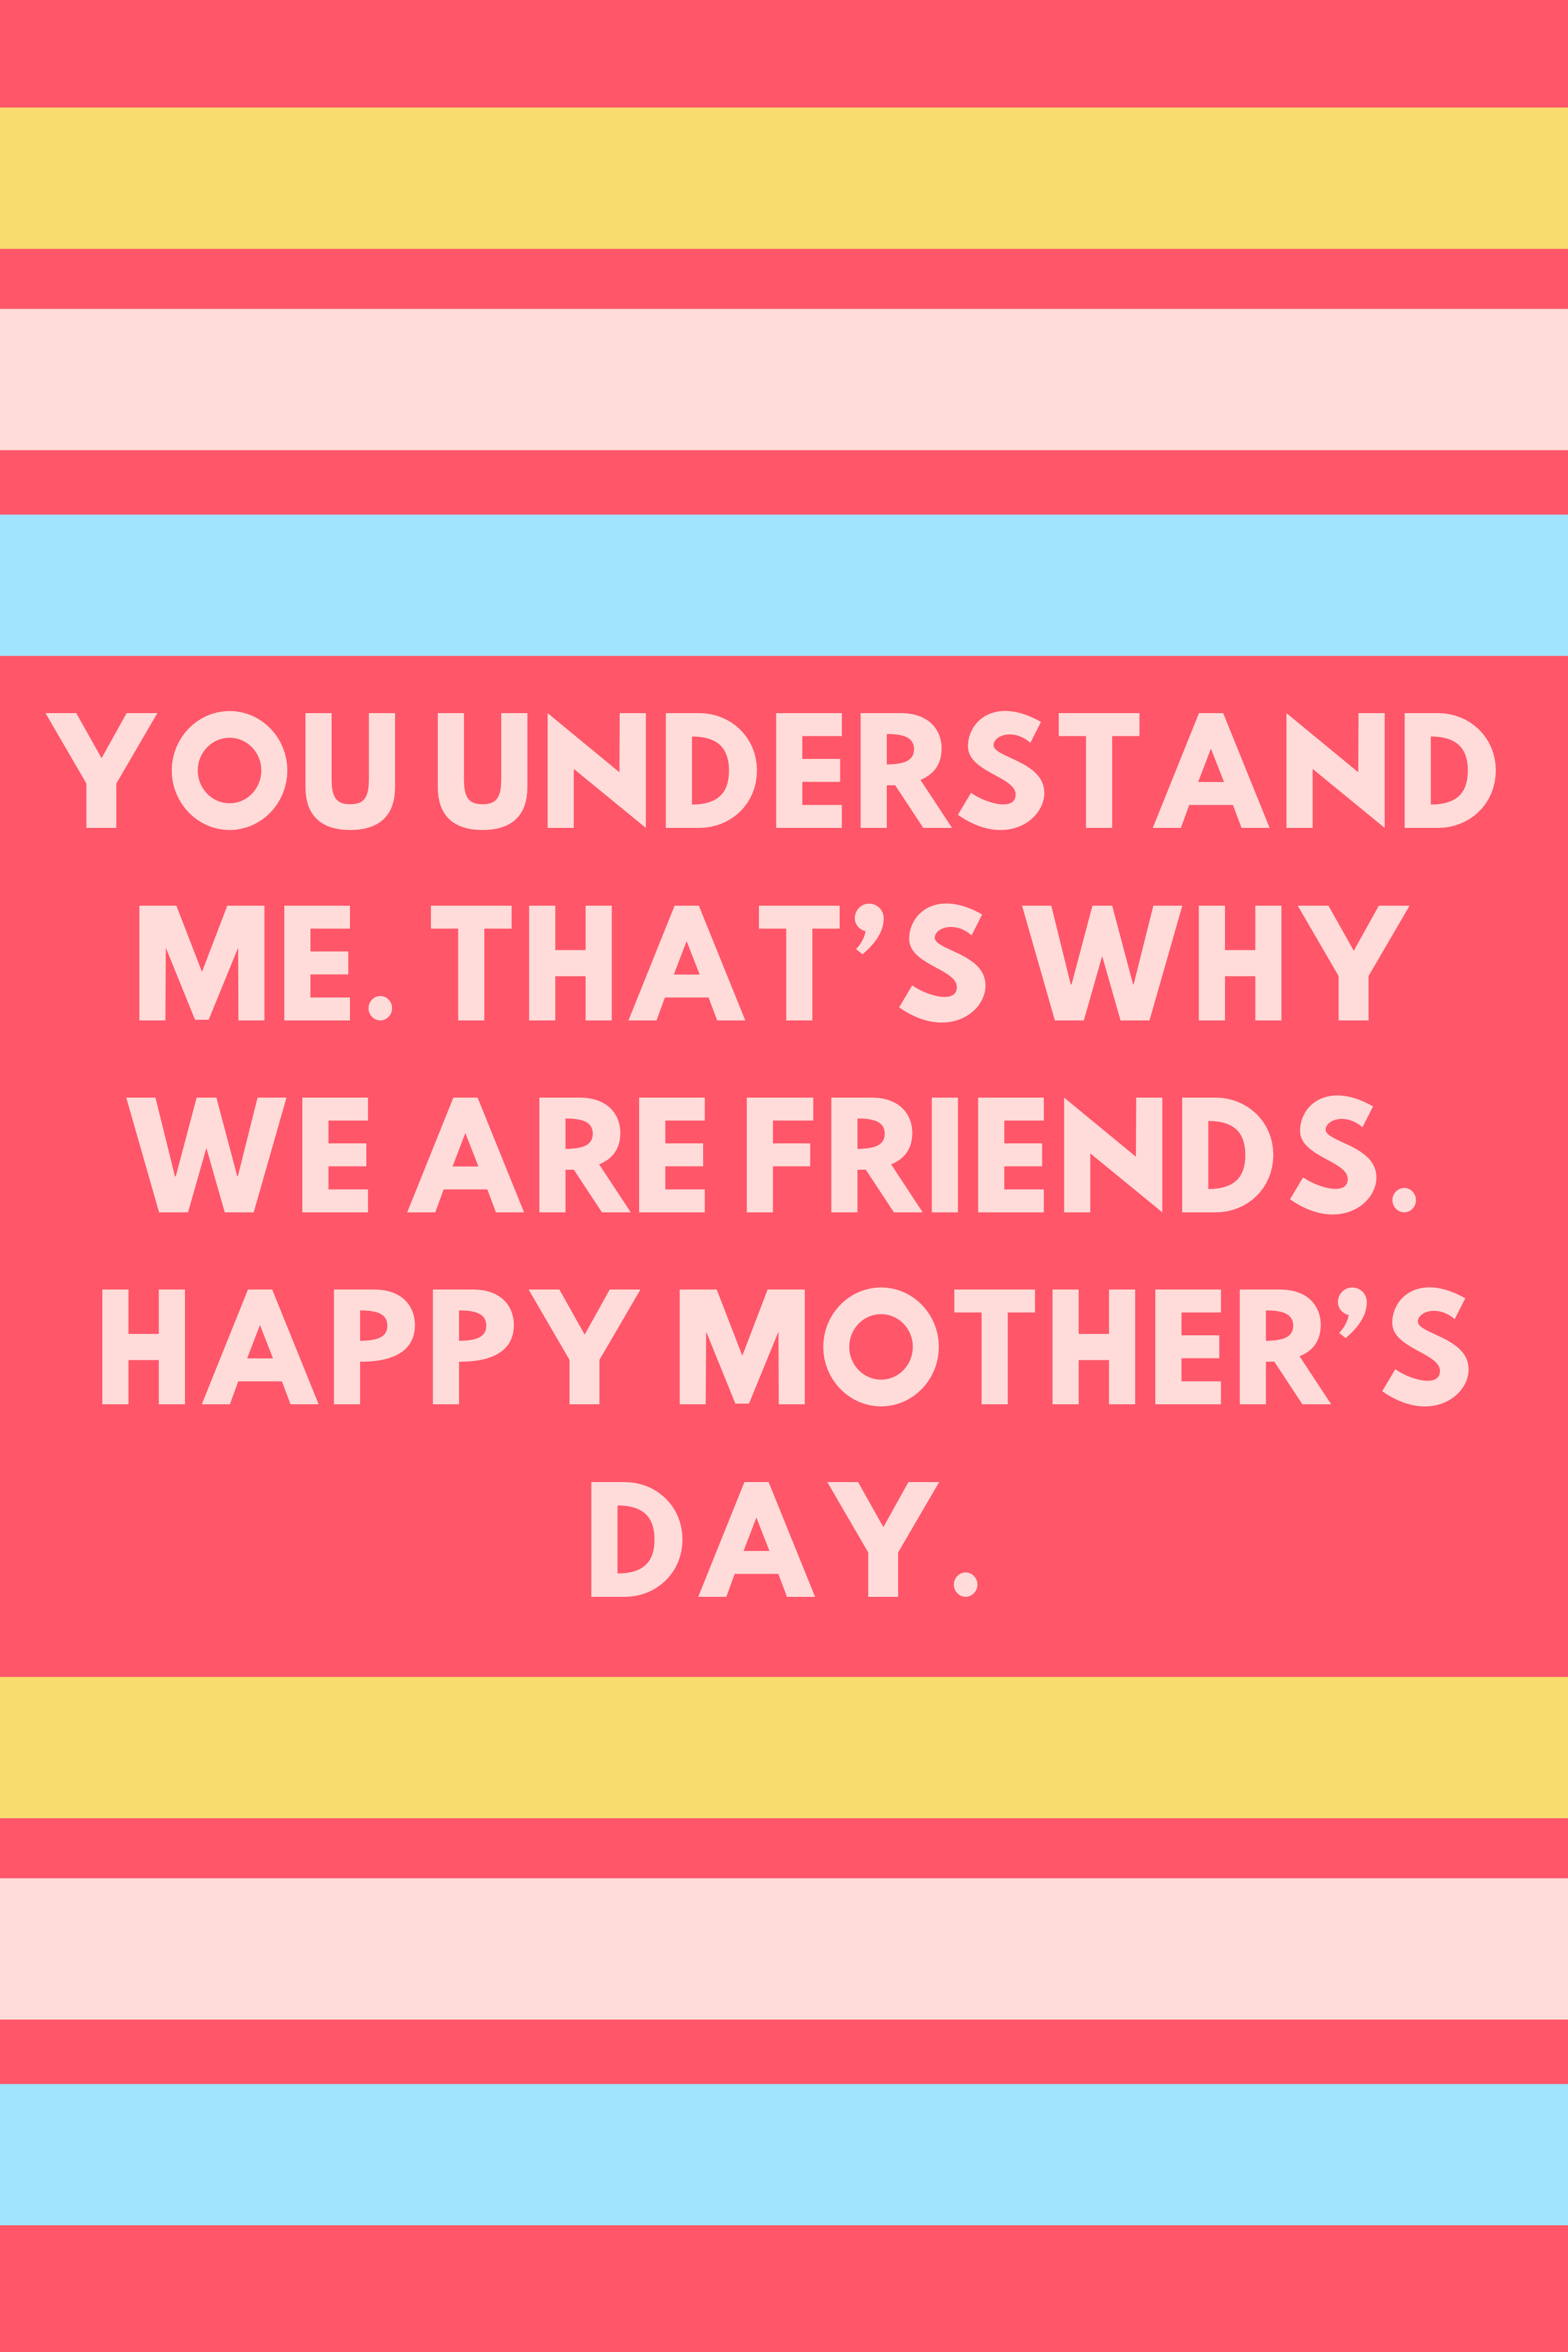 Happy Mothers Day Bestie Images : happy, mothers, bestie, images, Happy, Mothers, Friend, Quotes, Images, Darling, Quote